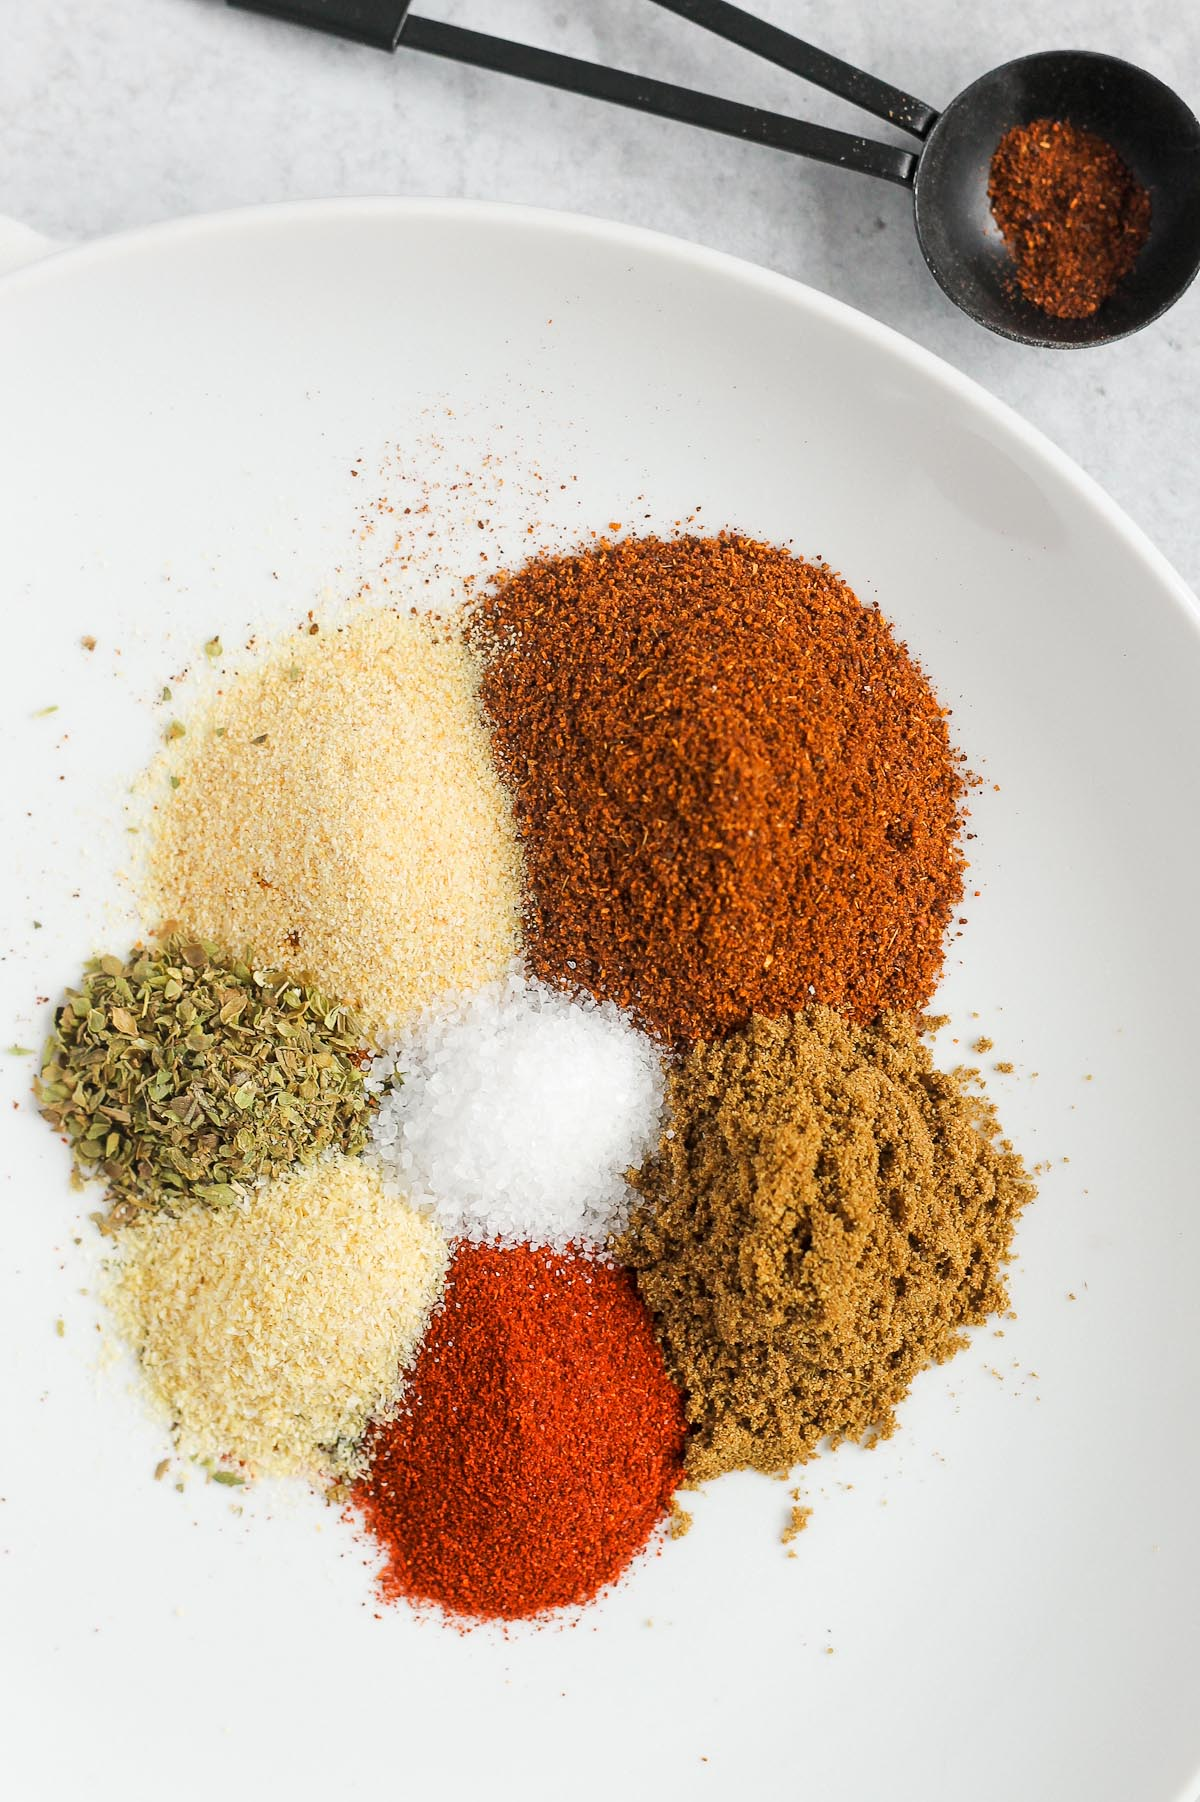 taco seasoning ingredients piled on a white plate